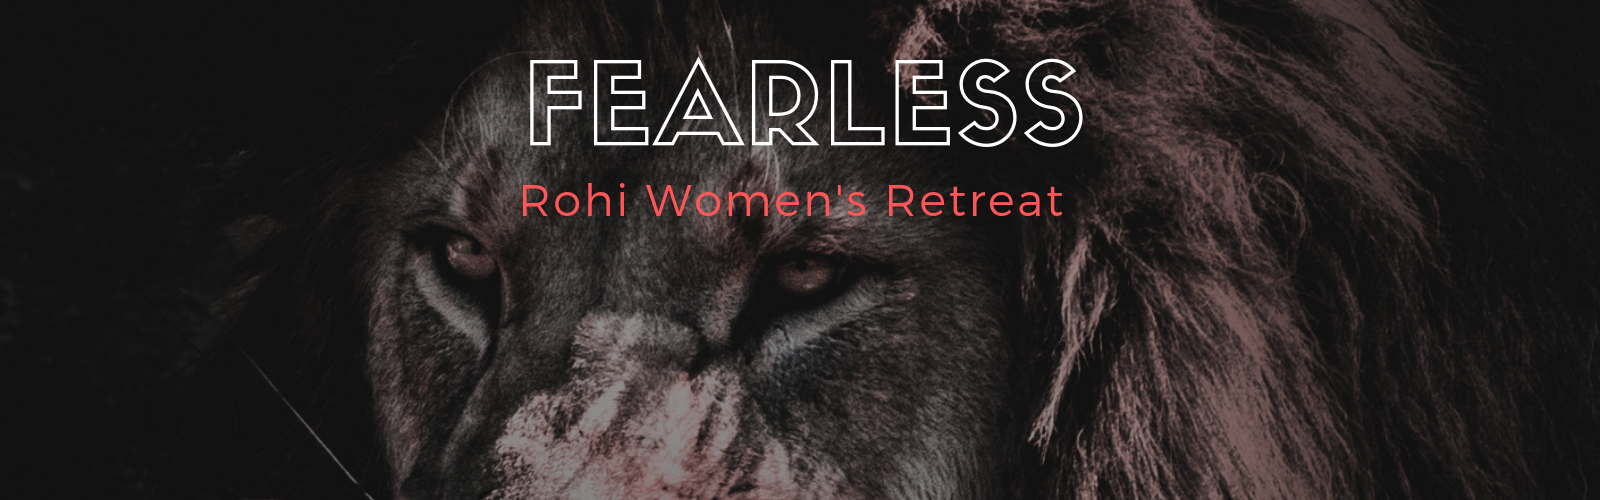 Fearless Women's Retreat